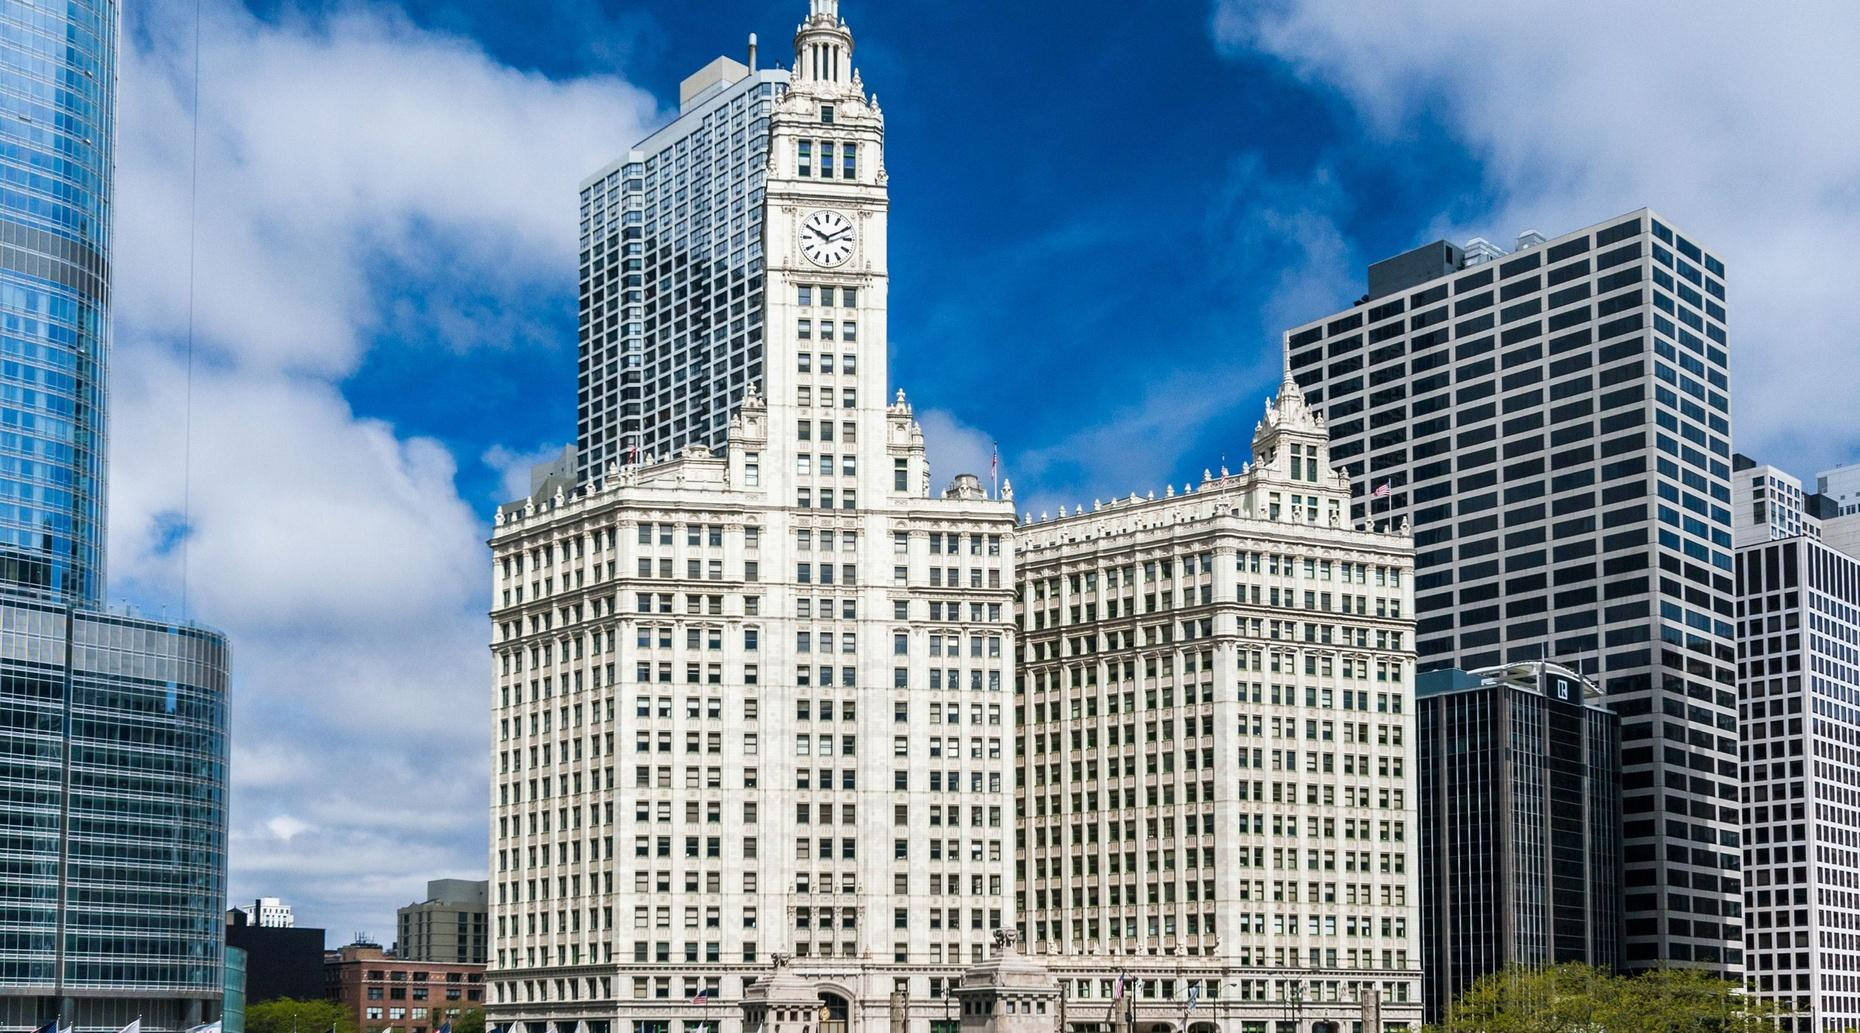 Best Chicago Attractions Tour